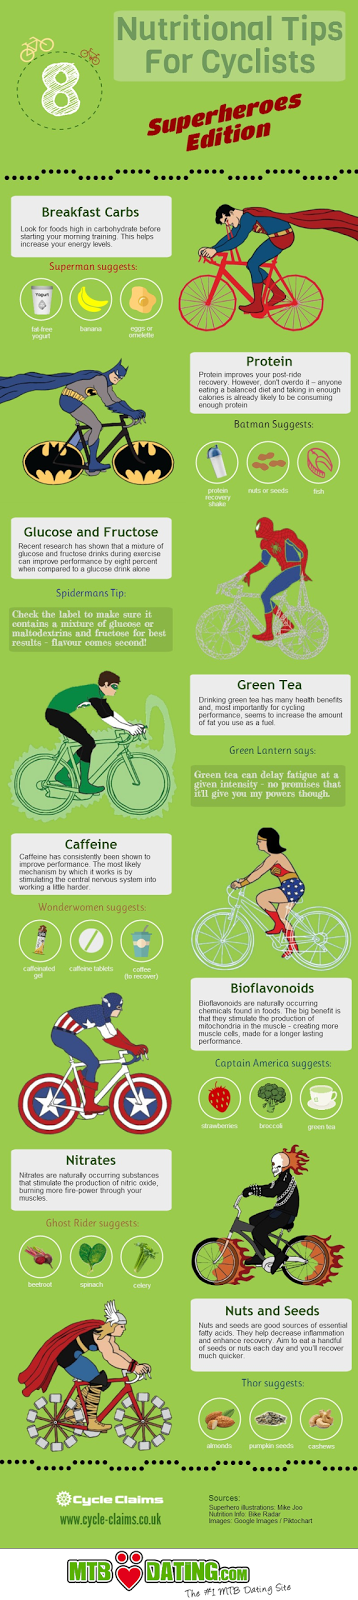 [Infographic] Nutritional Tips For Cyclists - Superheroes Edition